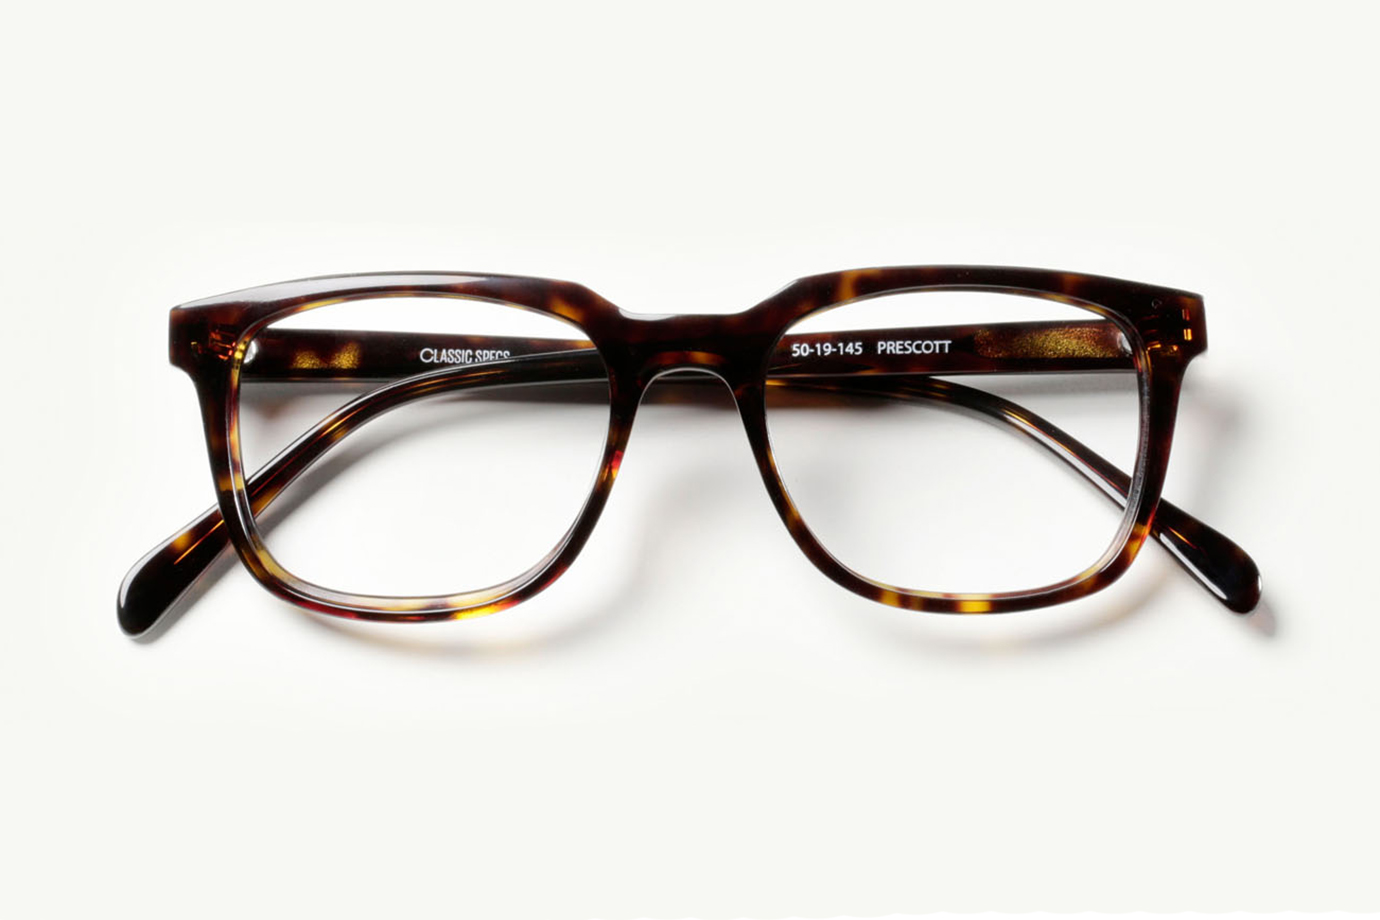 Buy specs stylish online recommend to wear for autumn in 2019